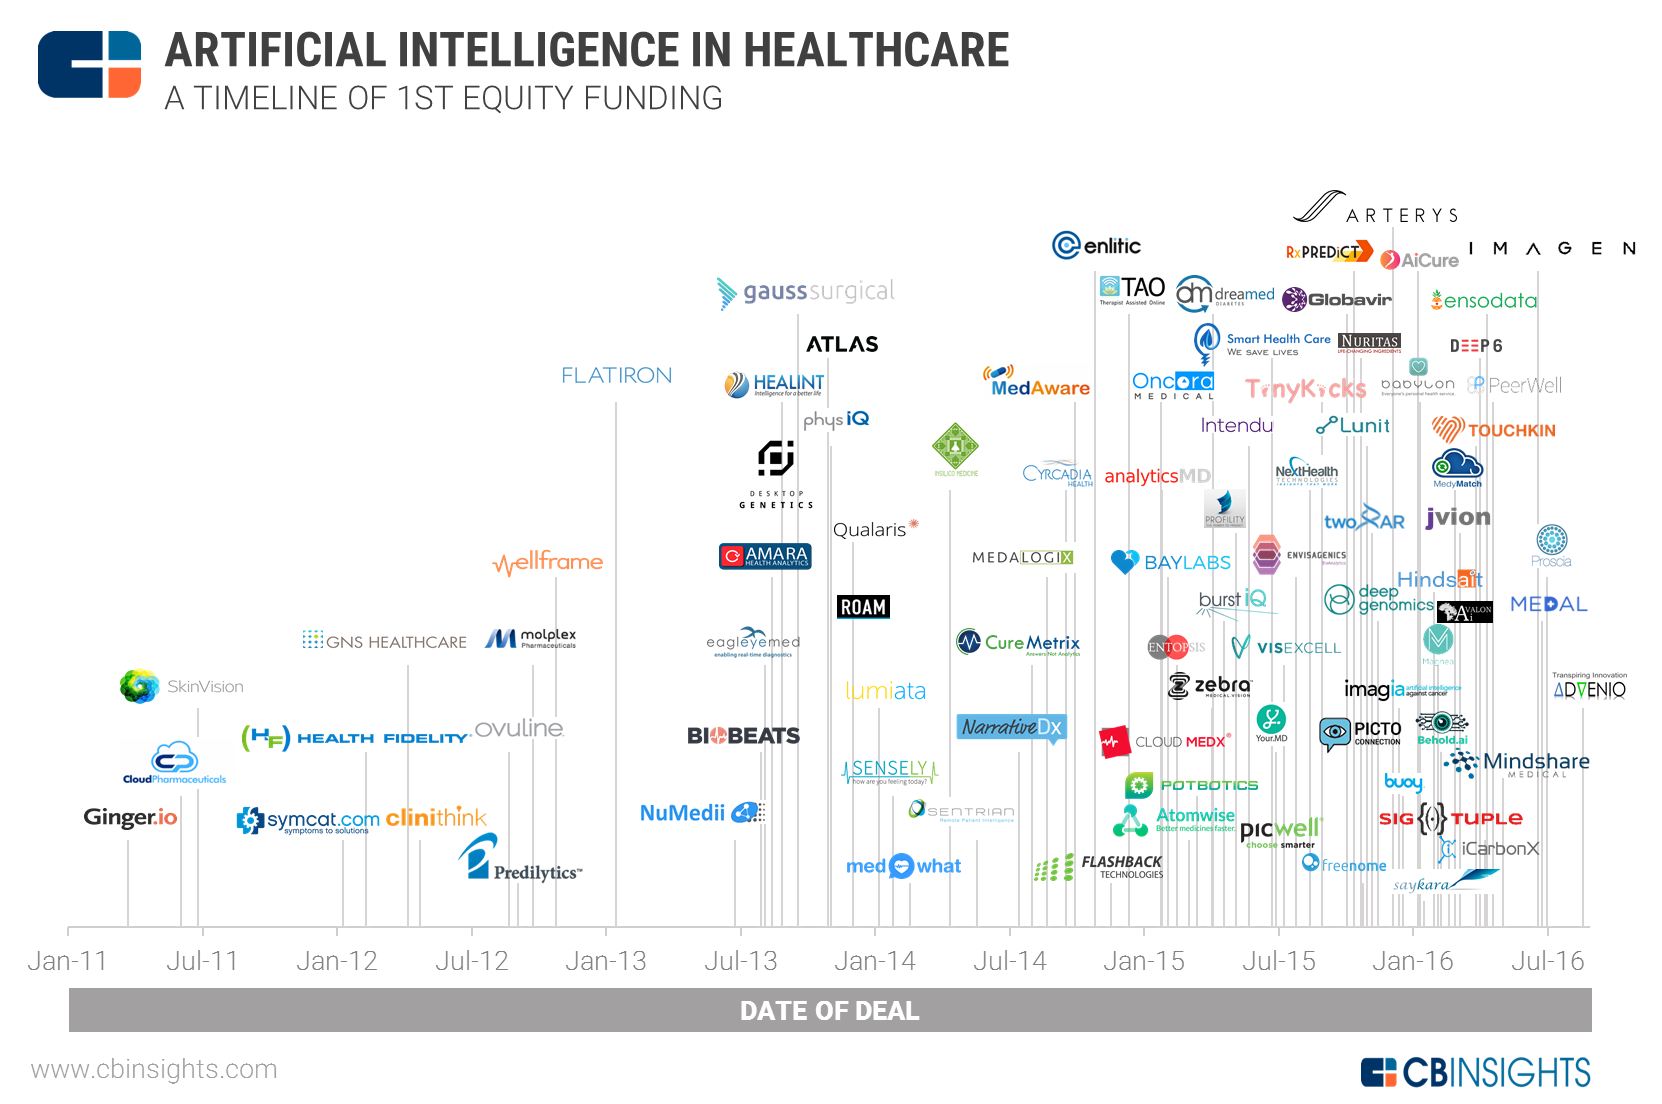 AI_health_first_equity_timeline_20160829